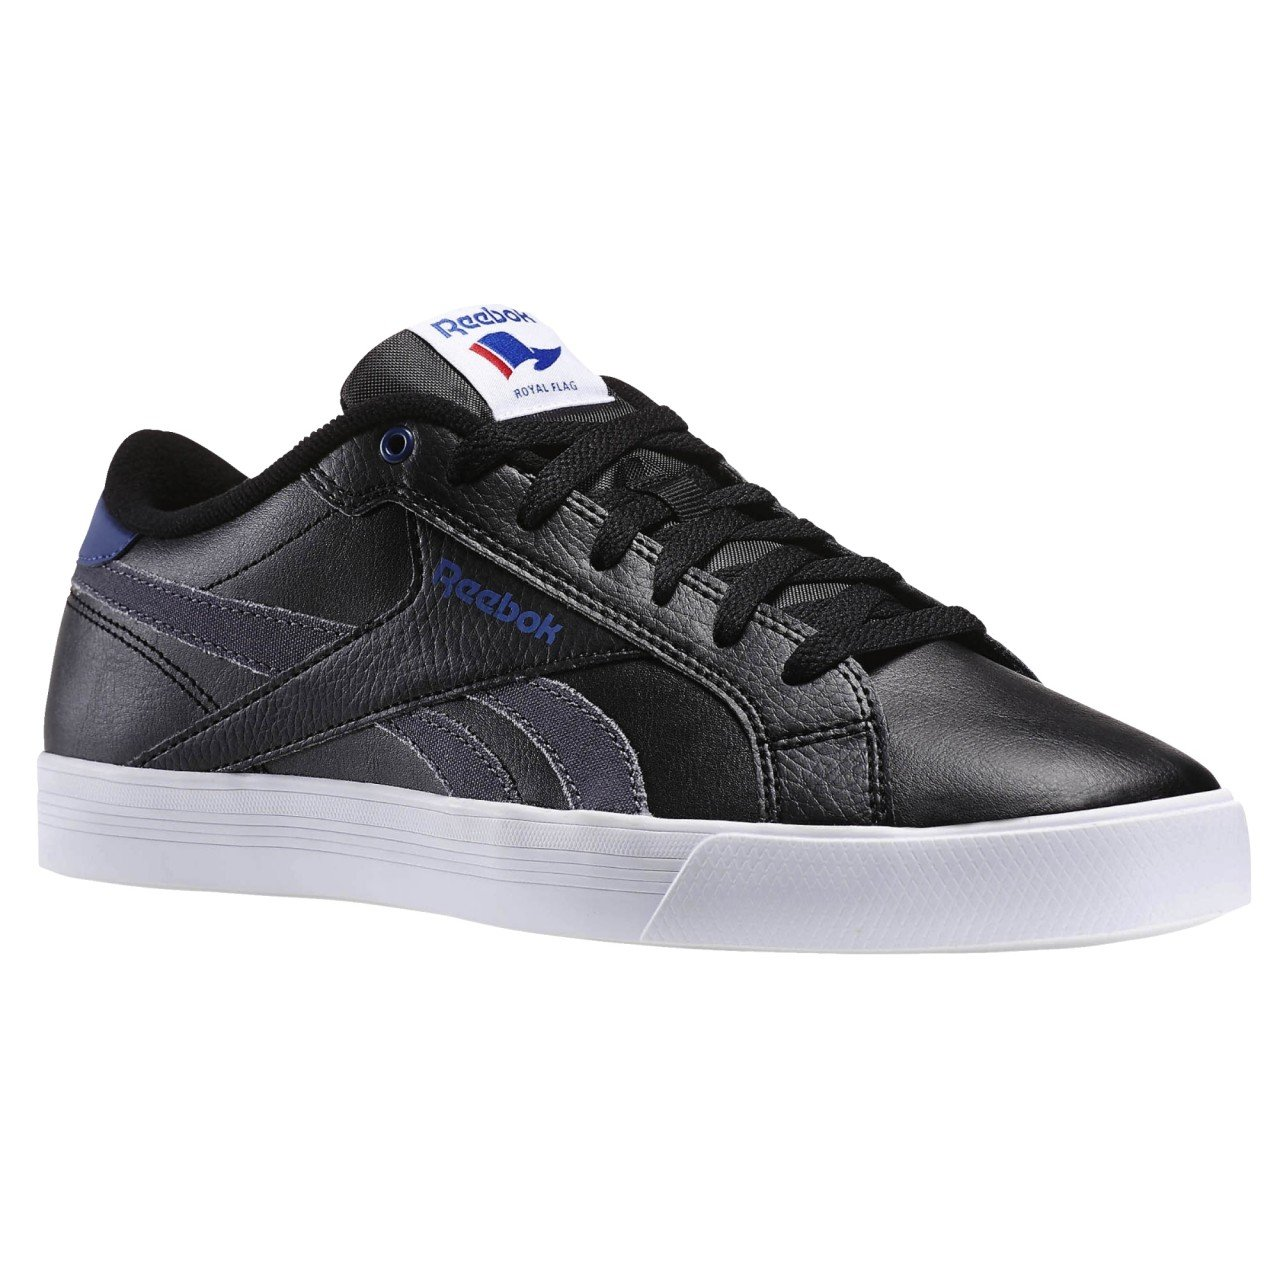 Reebok Royal Complete Low, Chaussures de Tennis Homme 289385